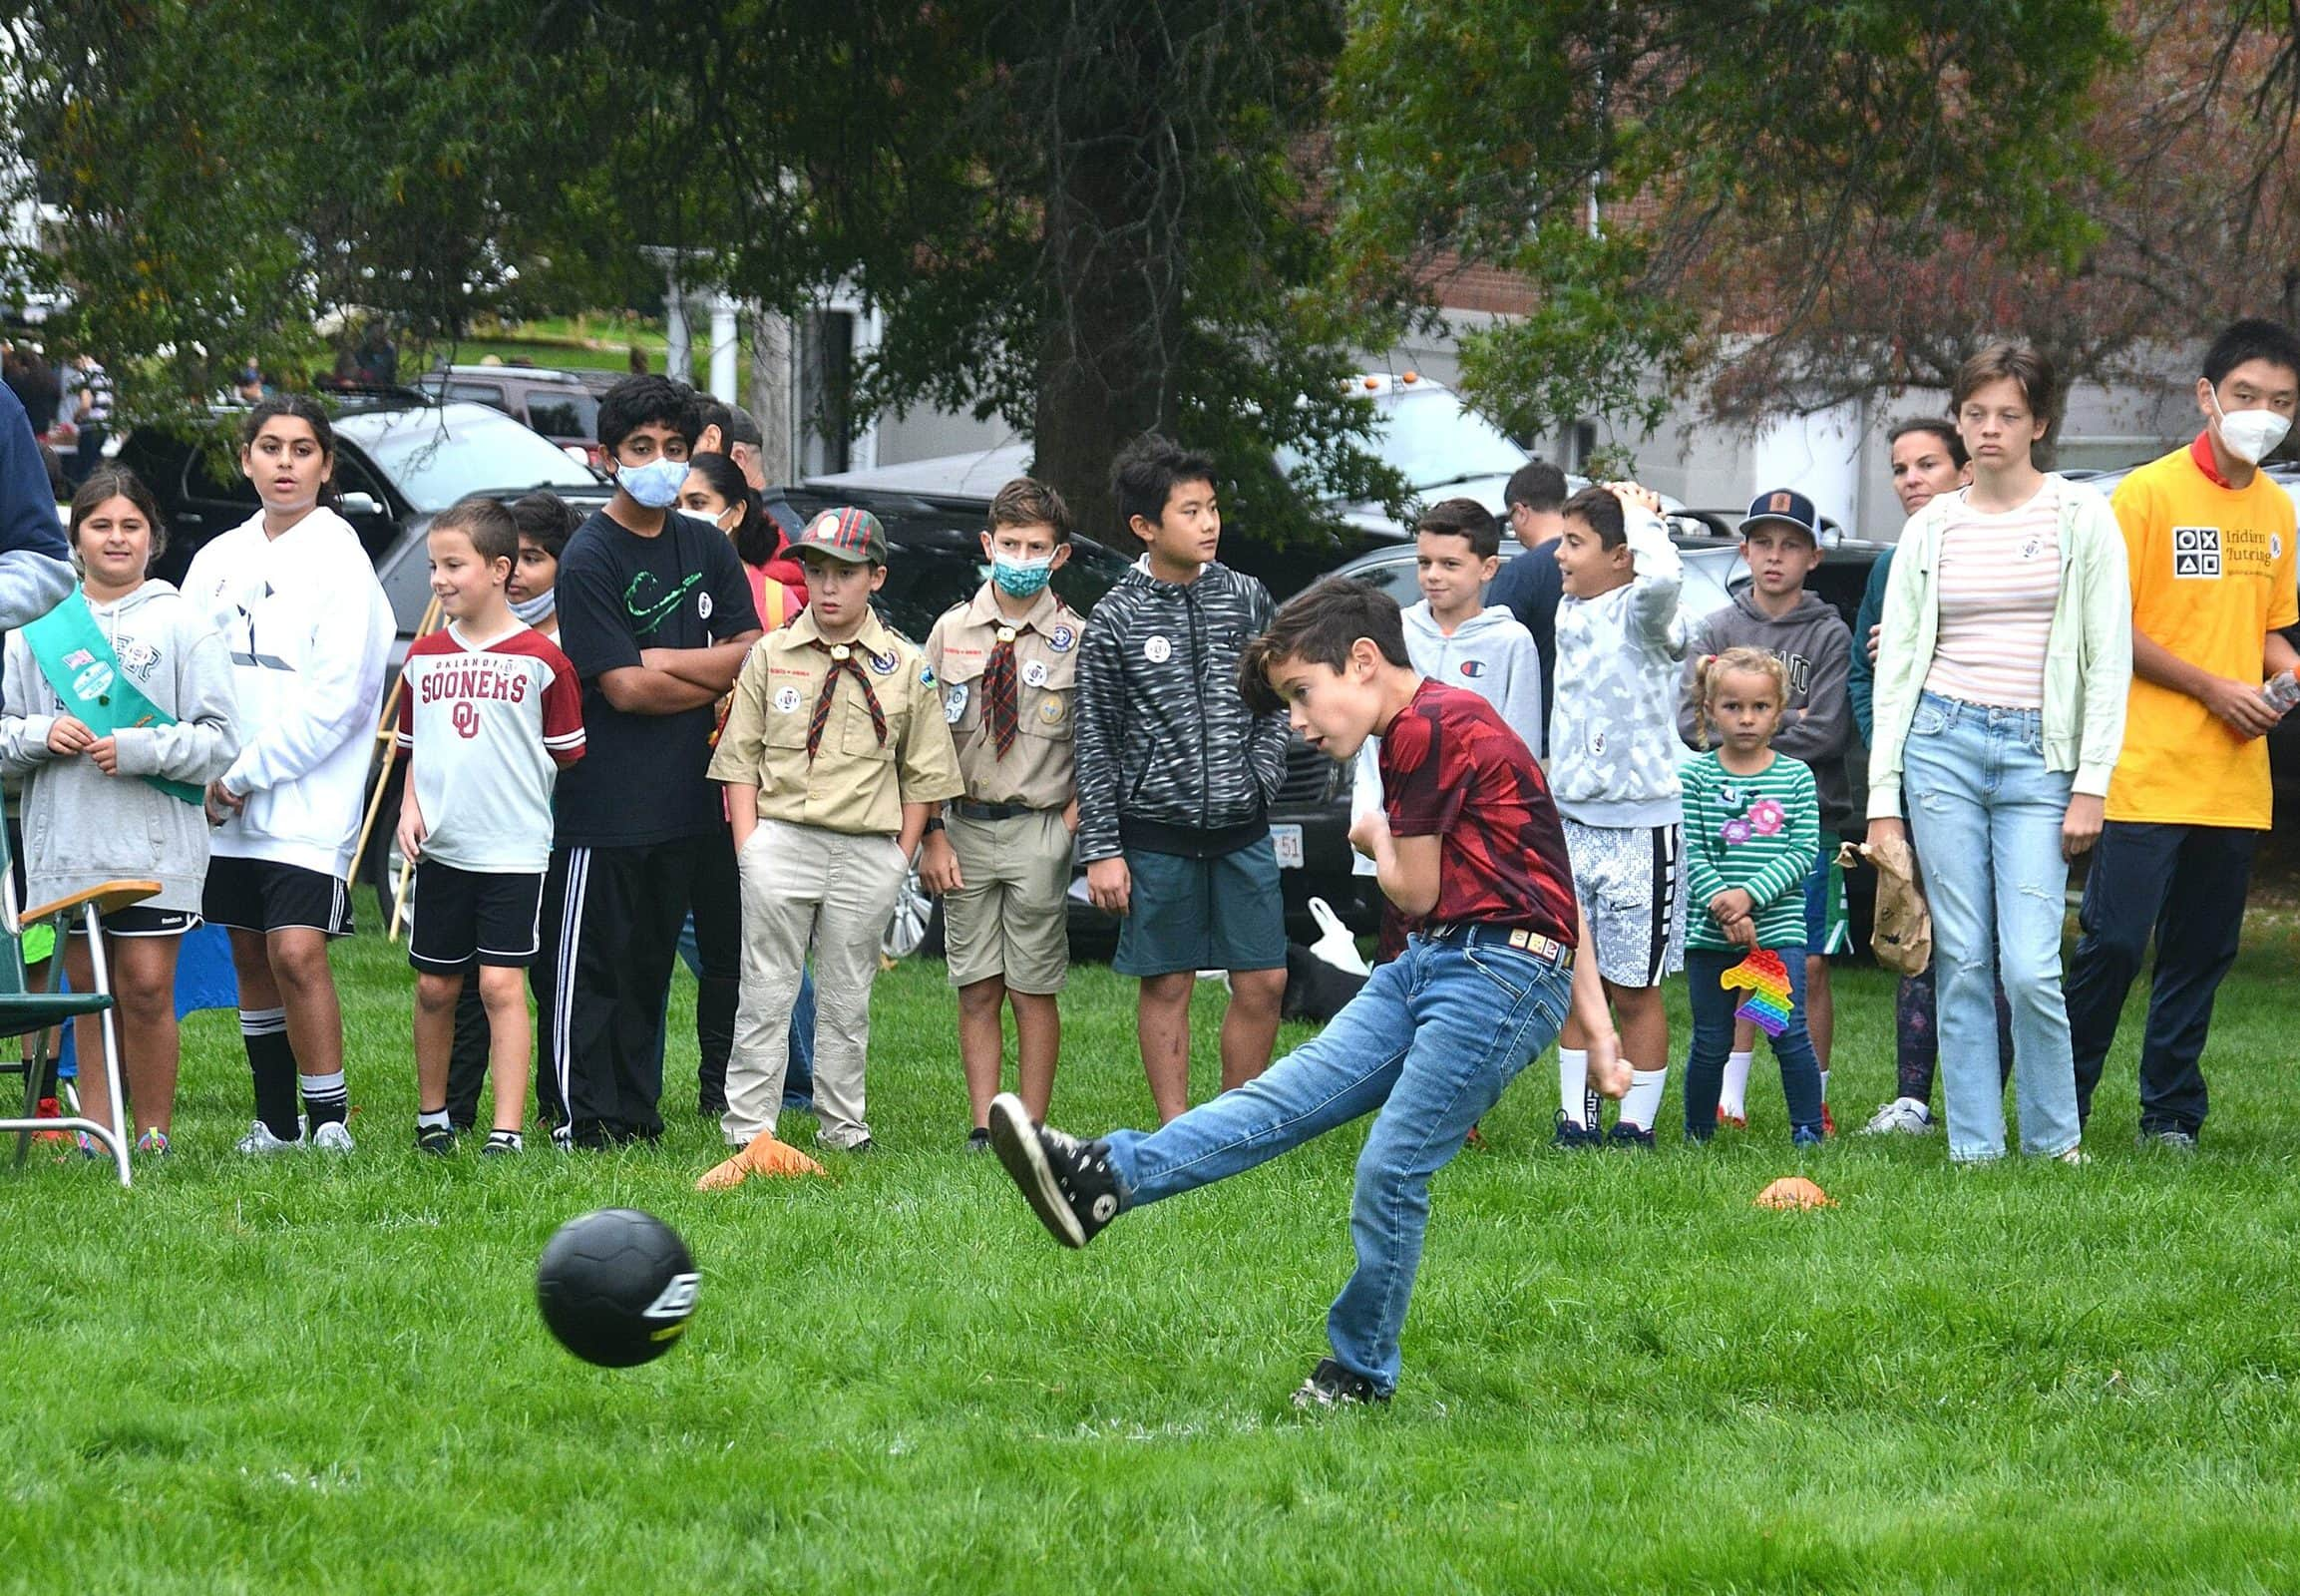 Dylan Cotreau, 8, competes in the Soccer Challenge sponsored by the Knights of Columbus Council 119.